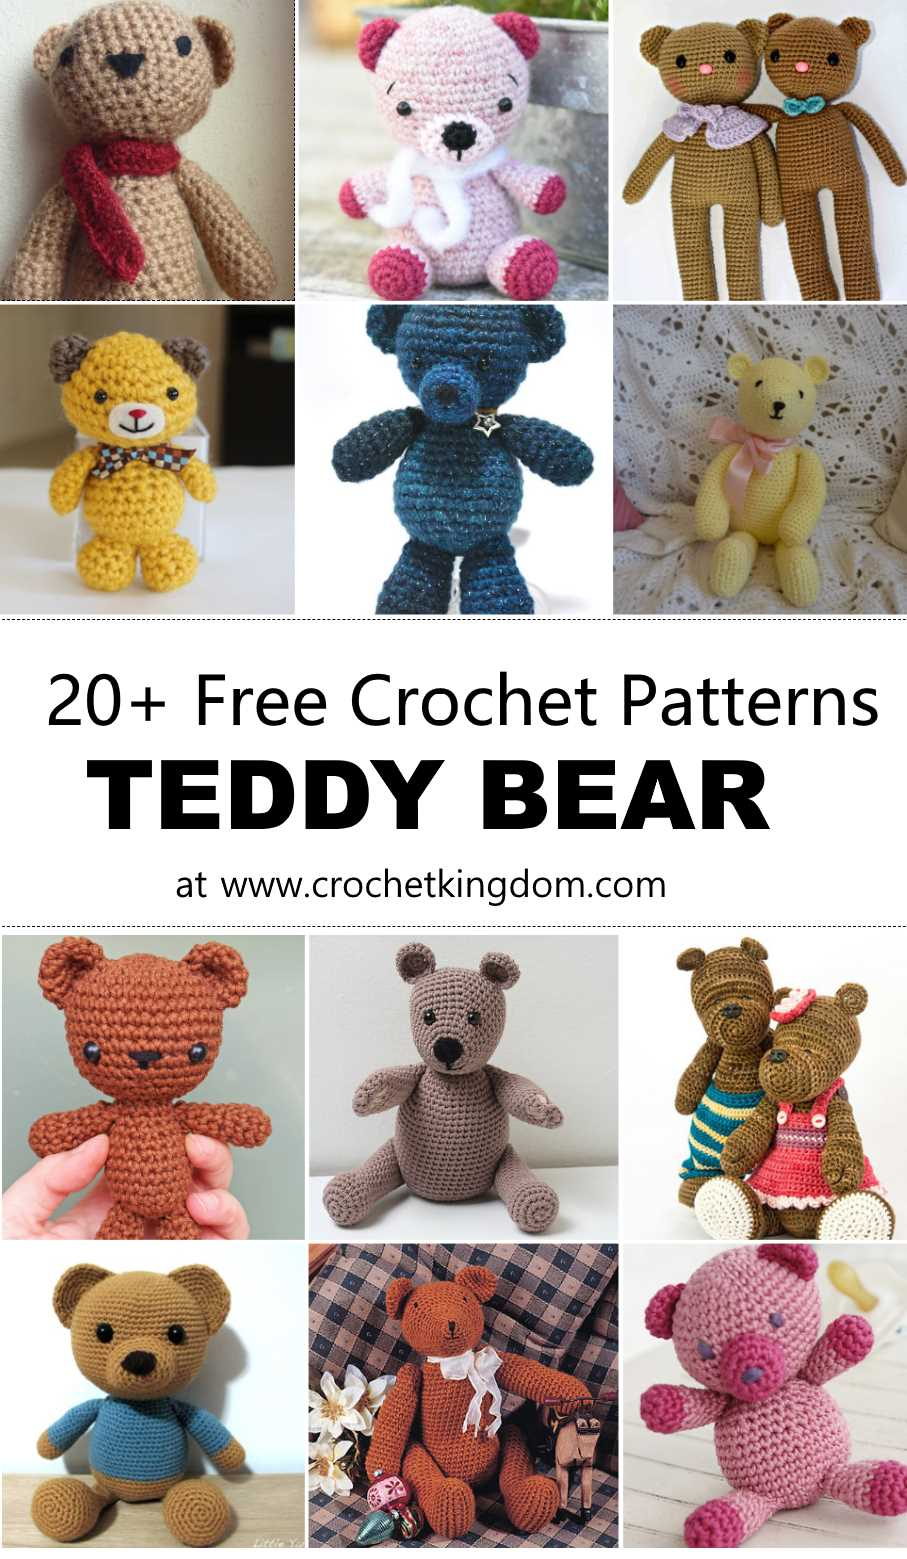 Honey teddy bears in love: crochet pattern - Amigurumi Today | 1559x907